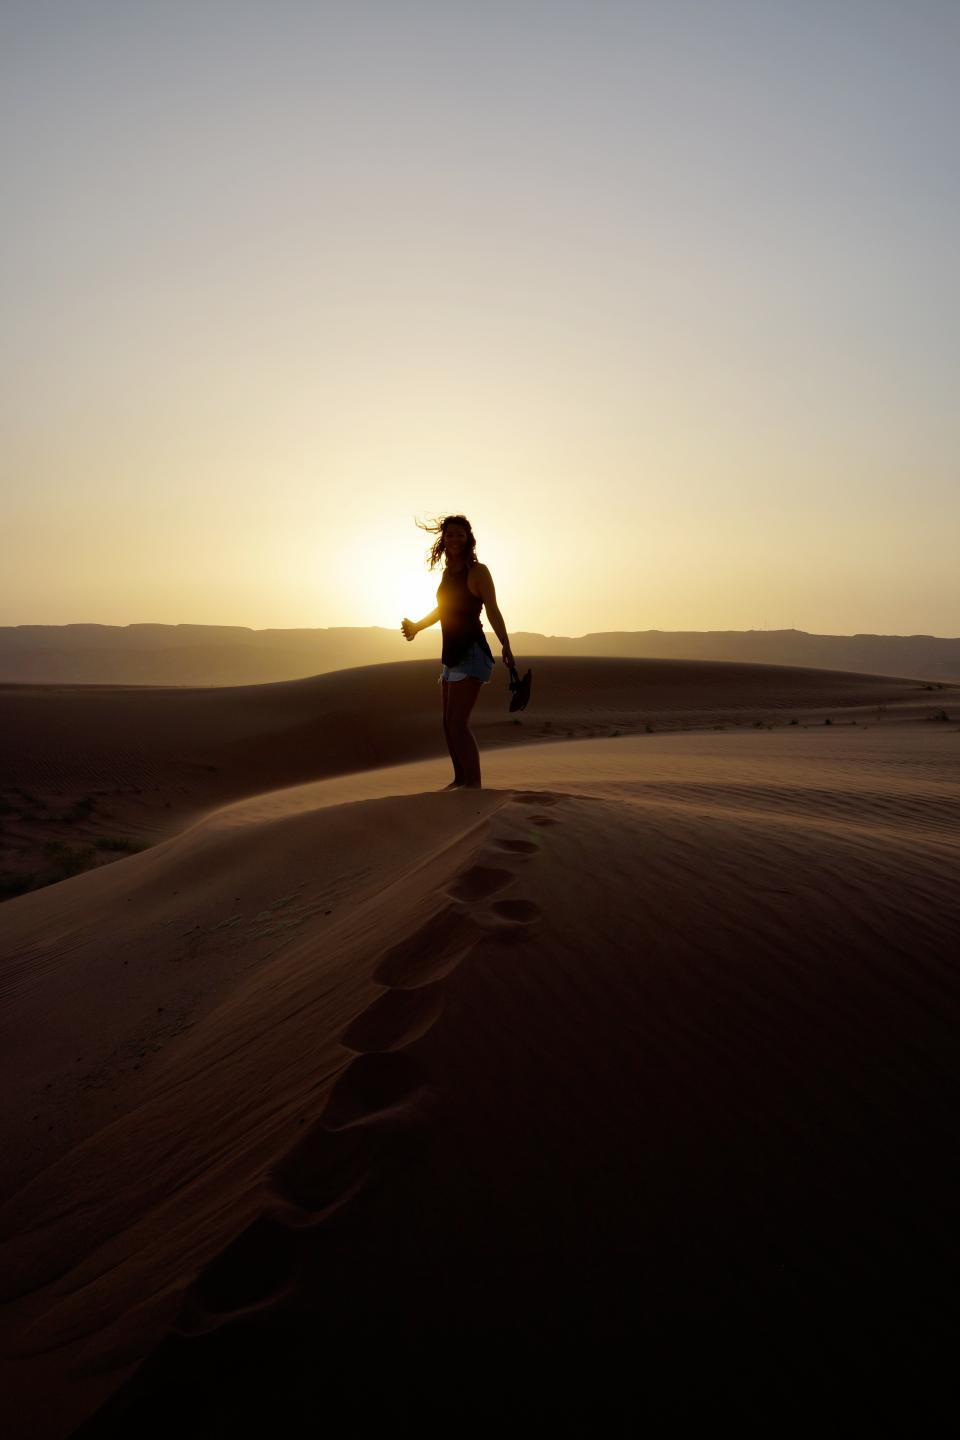 woman girl lady people stand desert dusk dawn sunset sunrise silhouette light shadows gradient yellow brown black